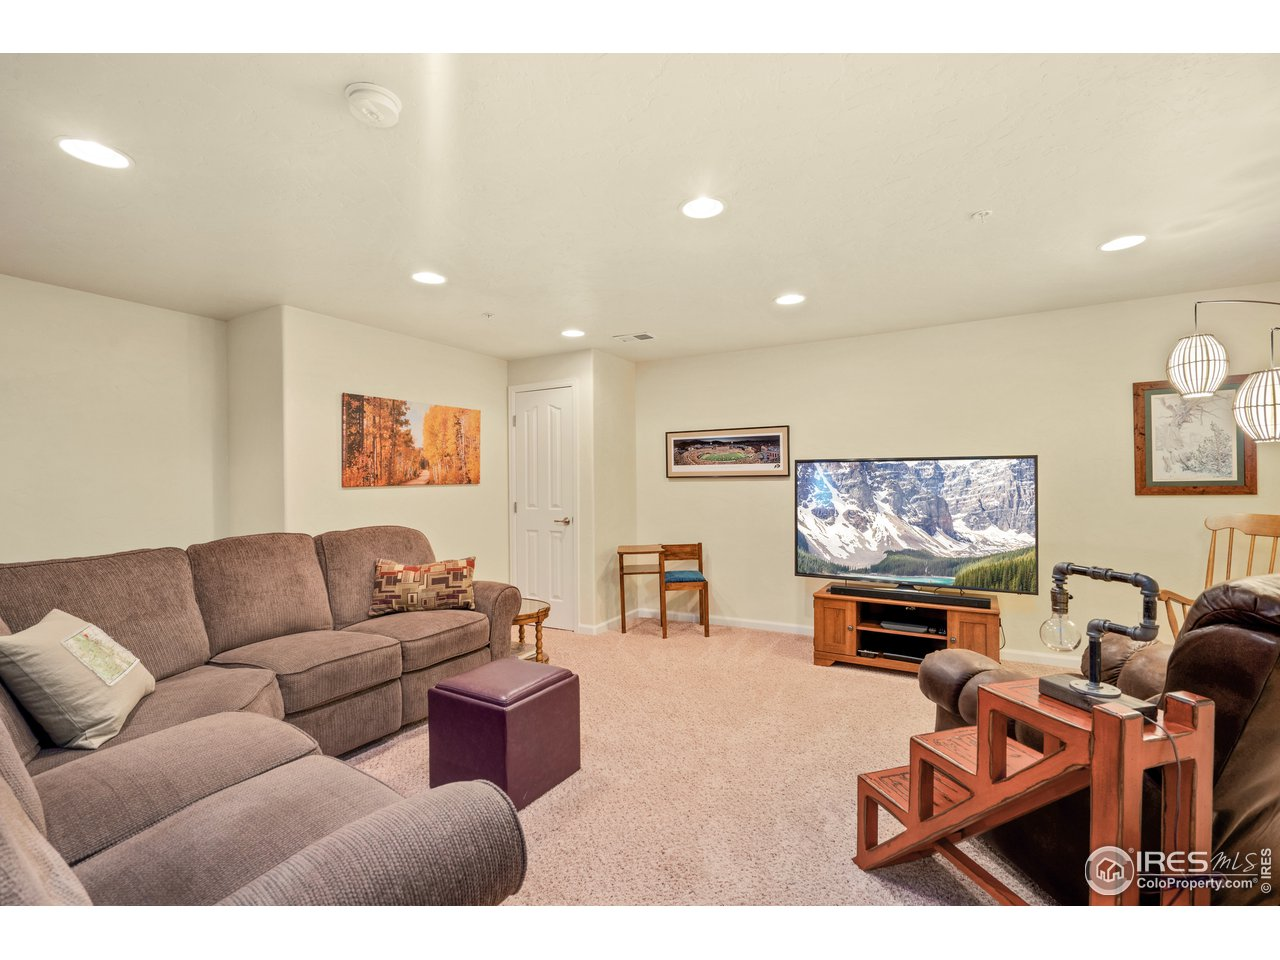 check out the amazing finished basement